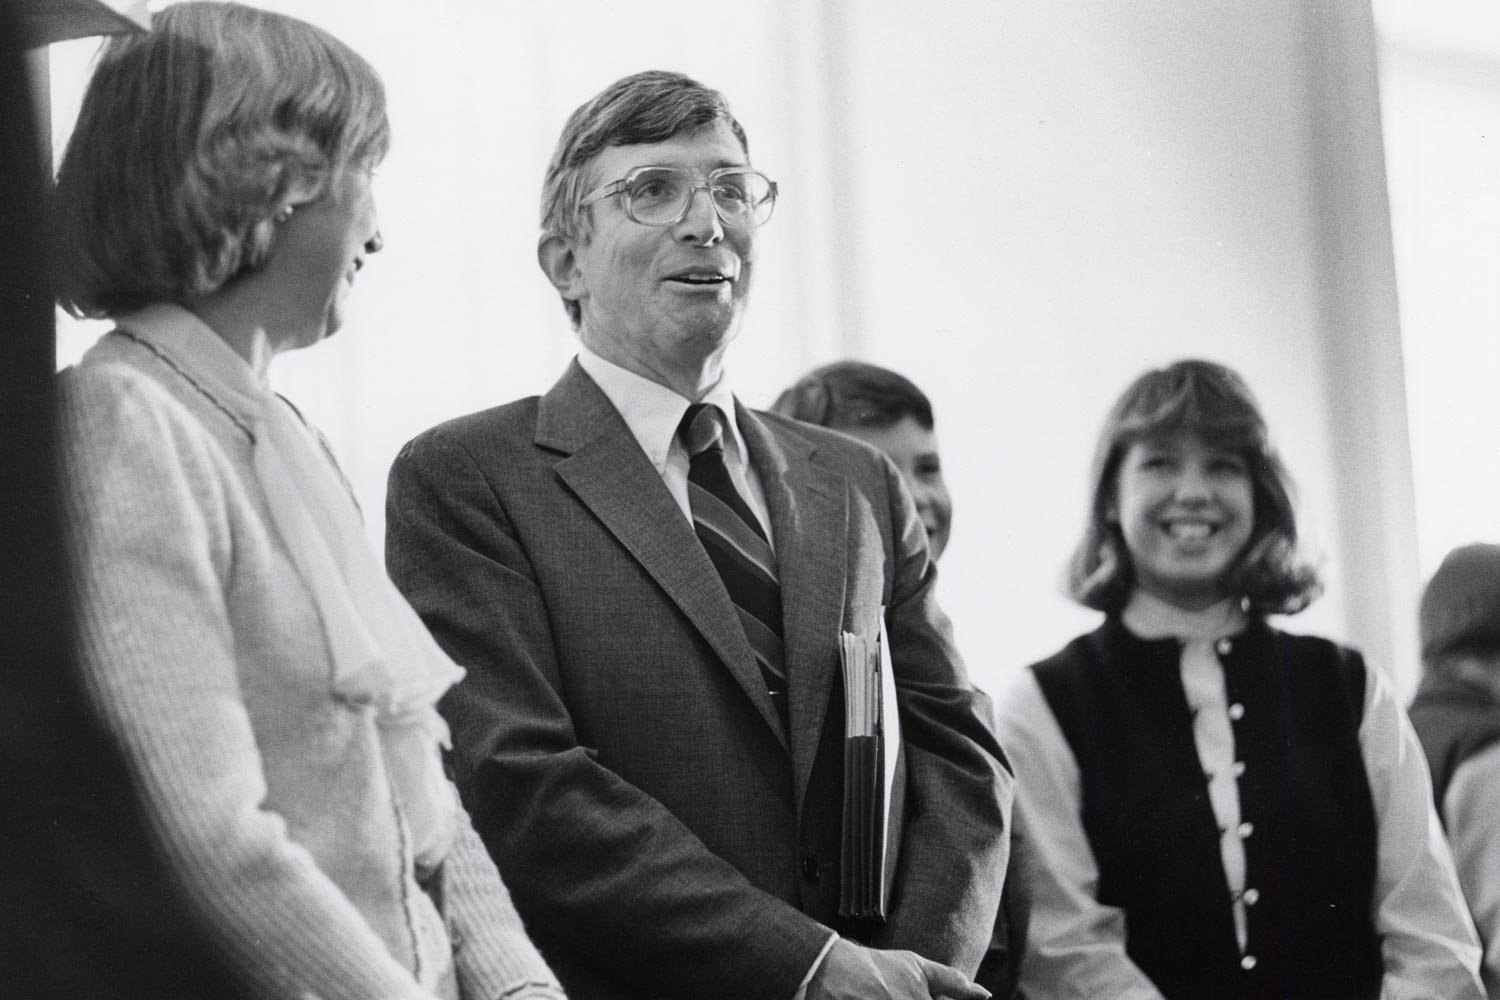 As president, O'Neil focused on extending UVA's opportunities to students of all backgrounds. (UVA Law Library)